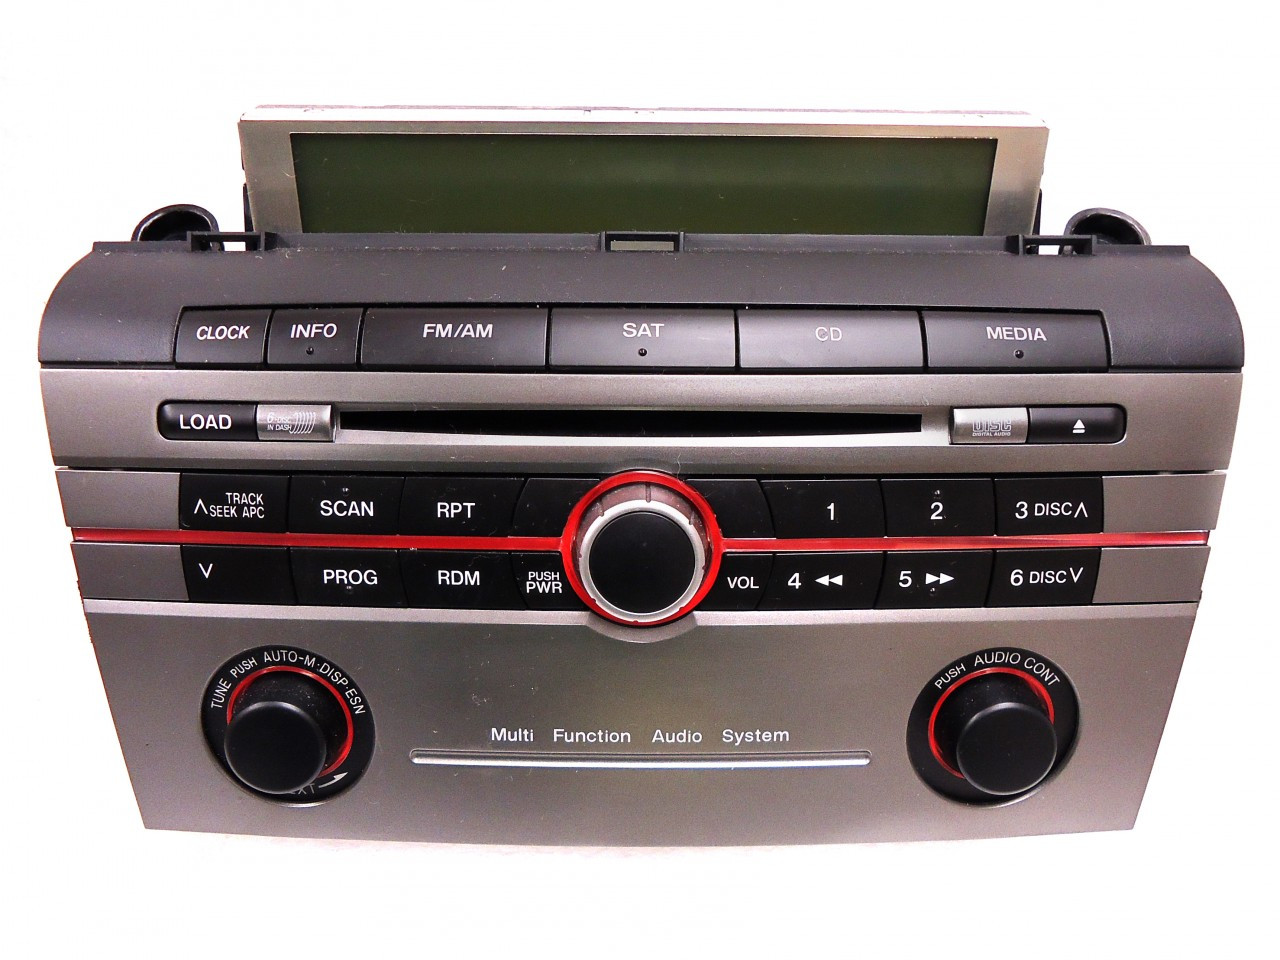 hight resolution of mazda 3 radio stereo 6 disc changer cd player sat multi function audio system br9k66arx bose